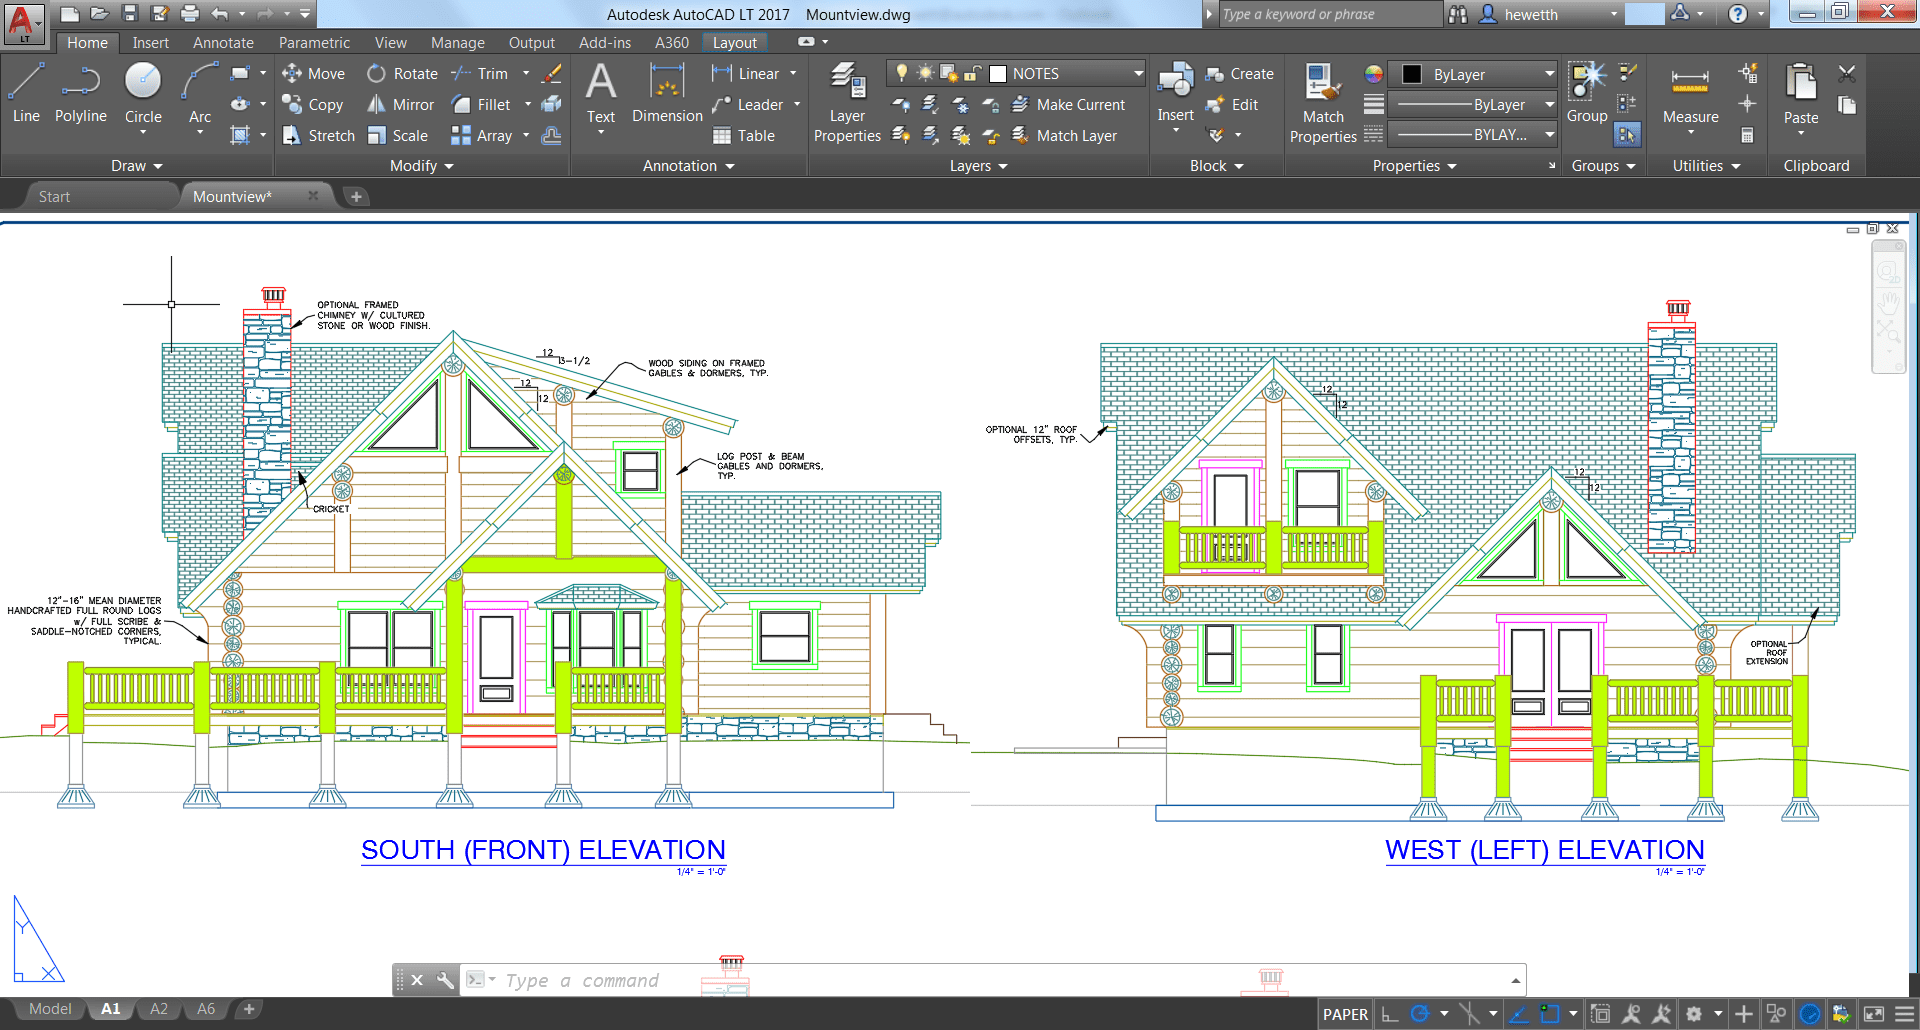 autocad-lt-2017-screenshot-house